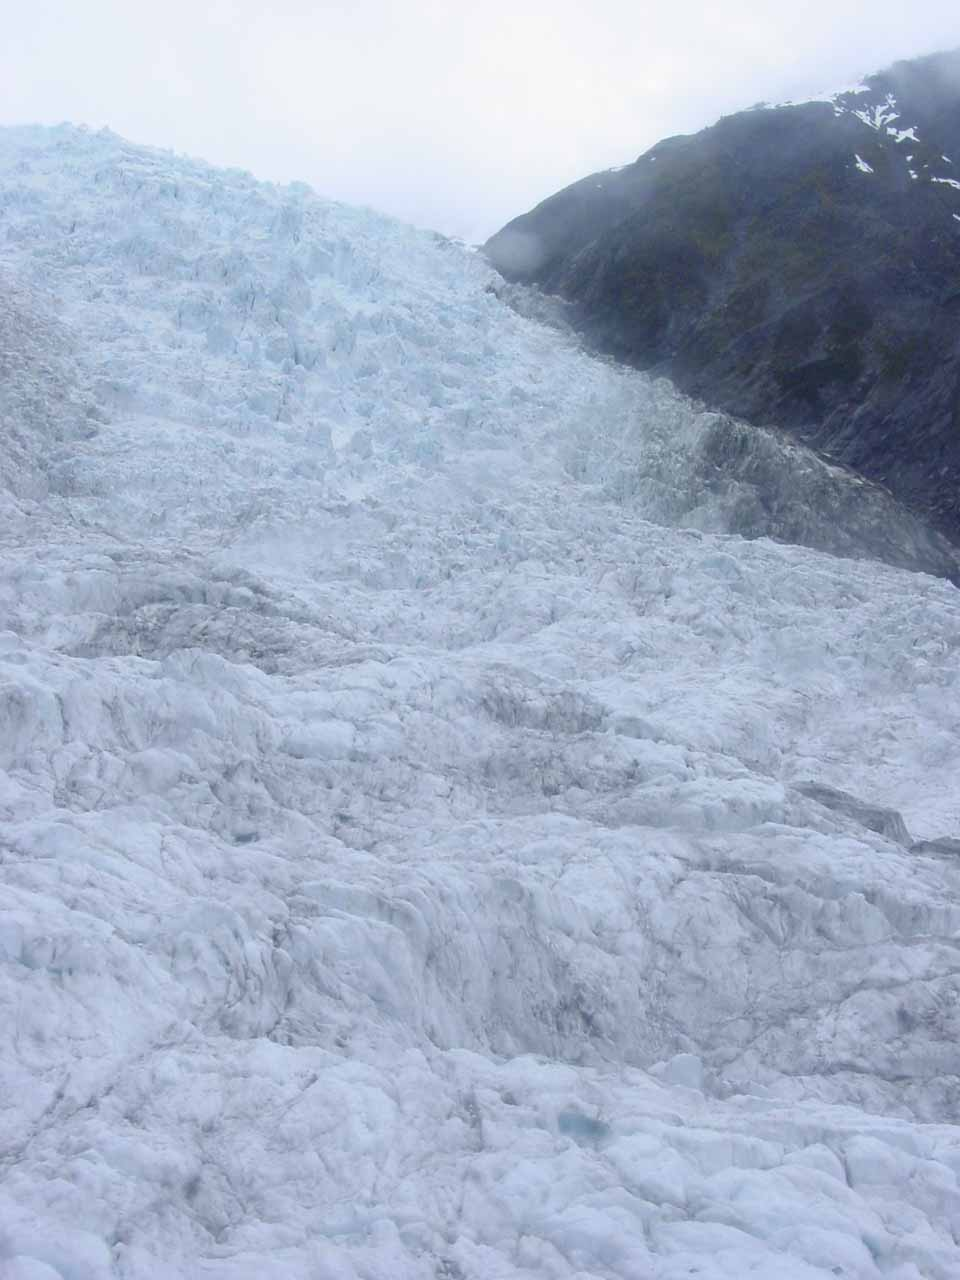 Looking up towards the uppermost sections of the Franz Josef Glacier